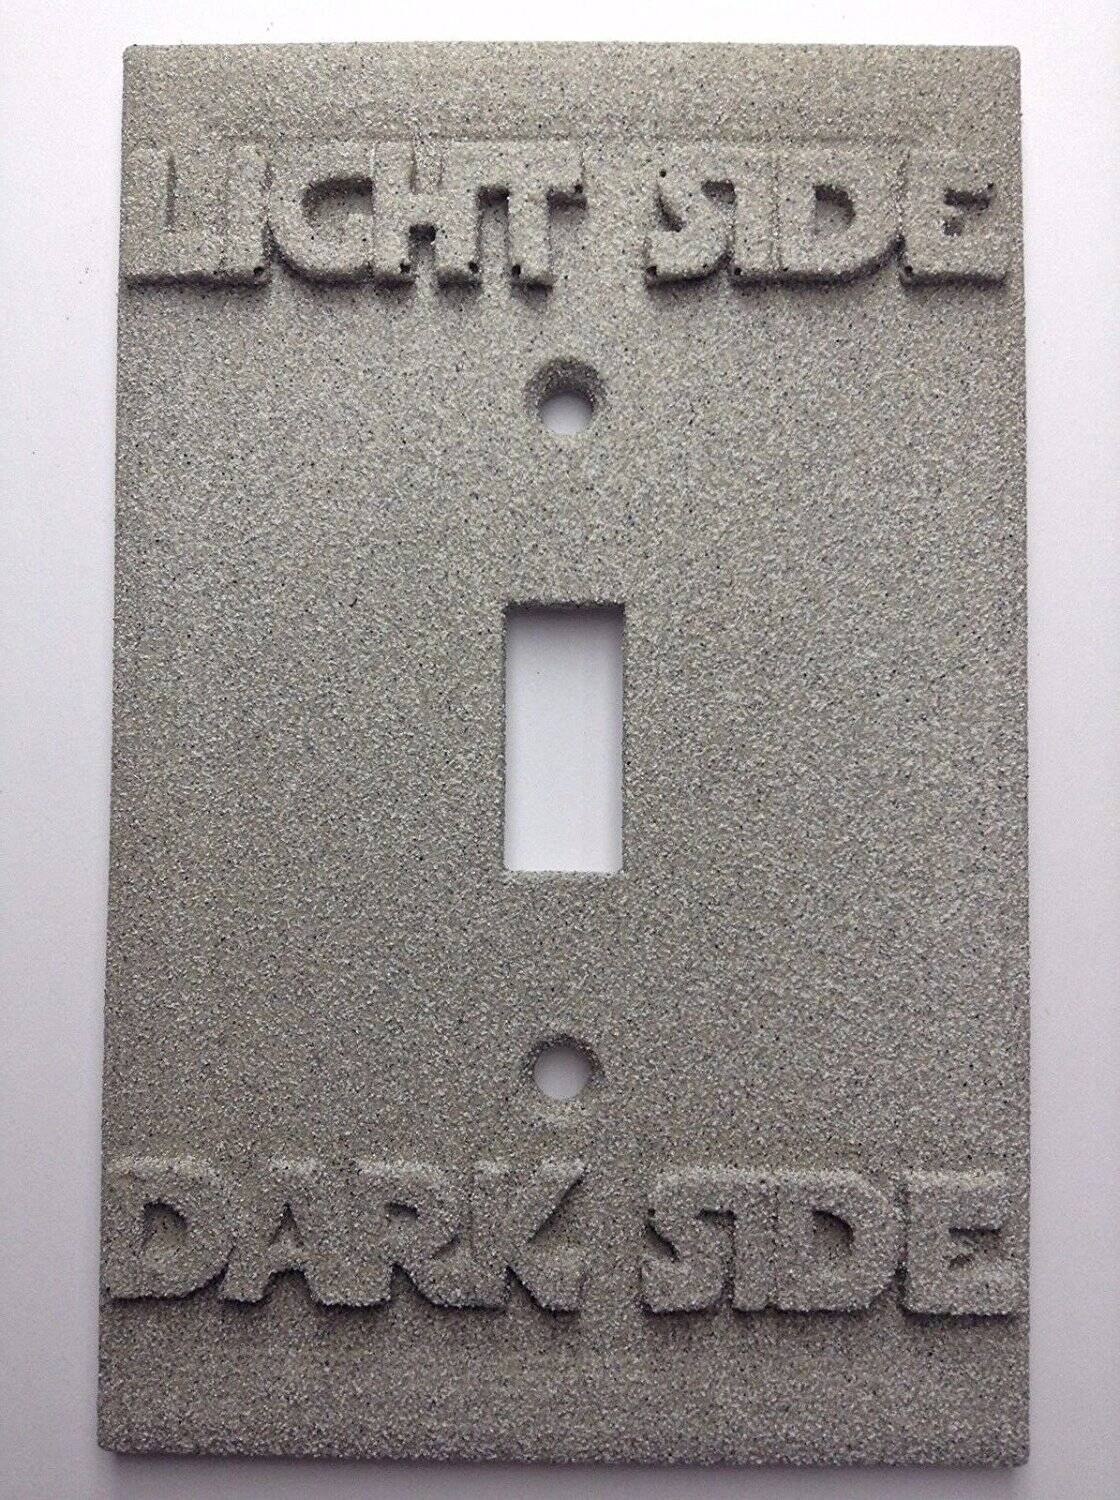 Star Wars Light Switch Cover - http://coolthings.us